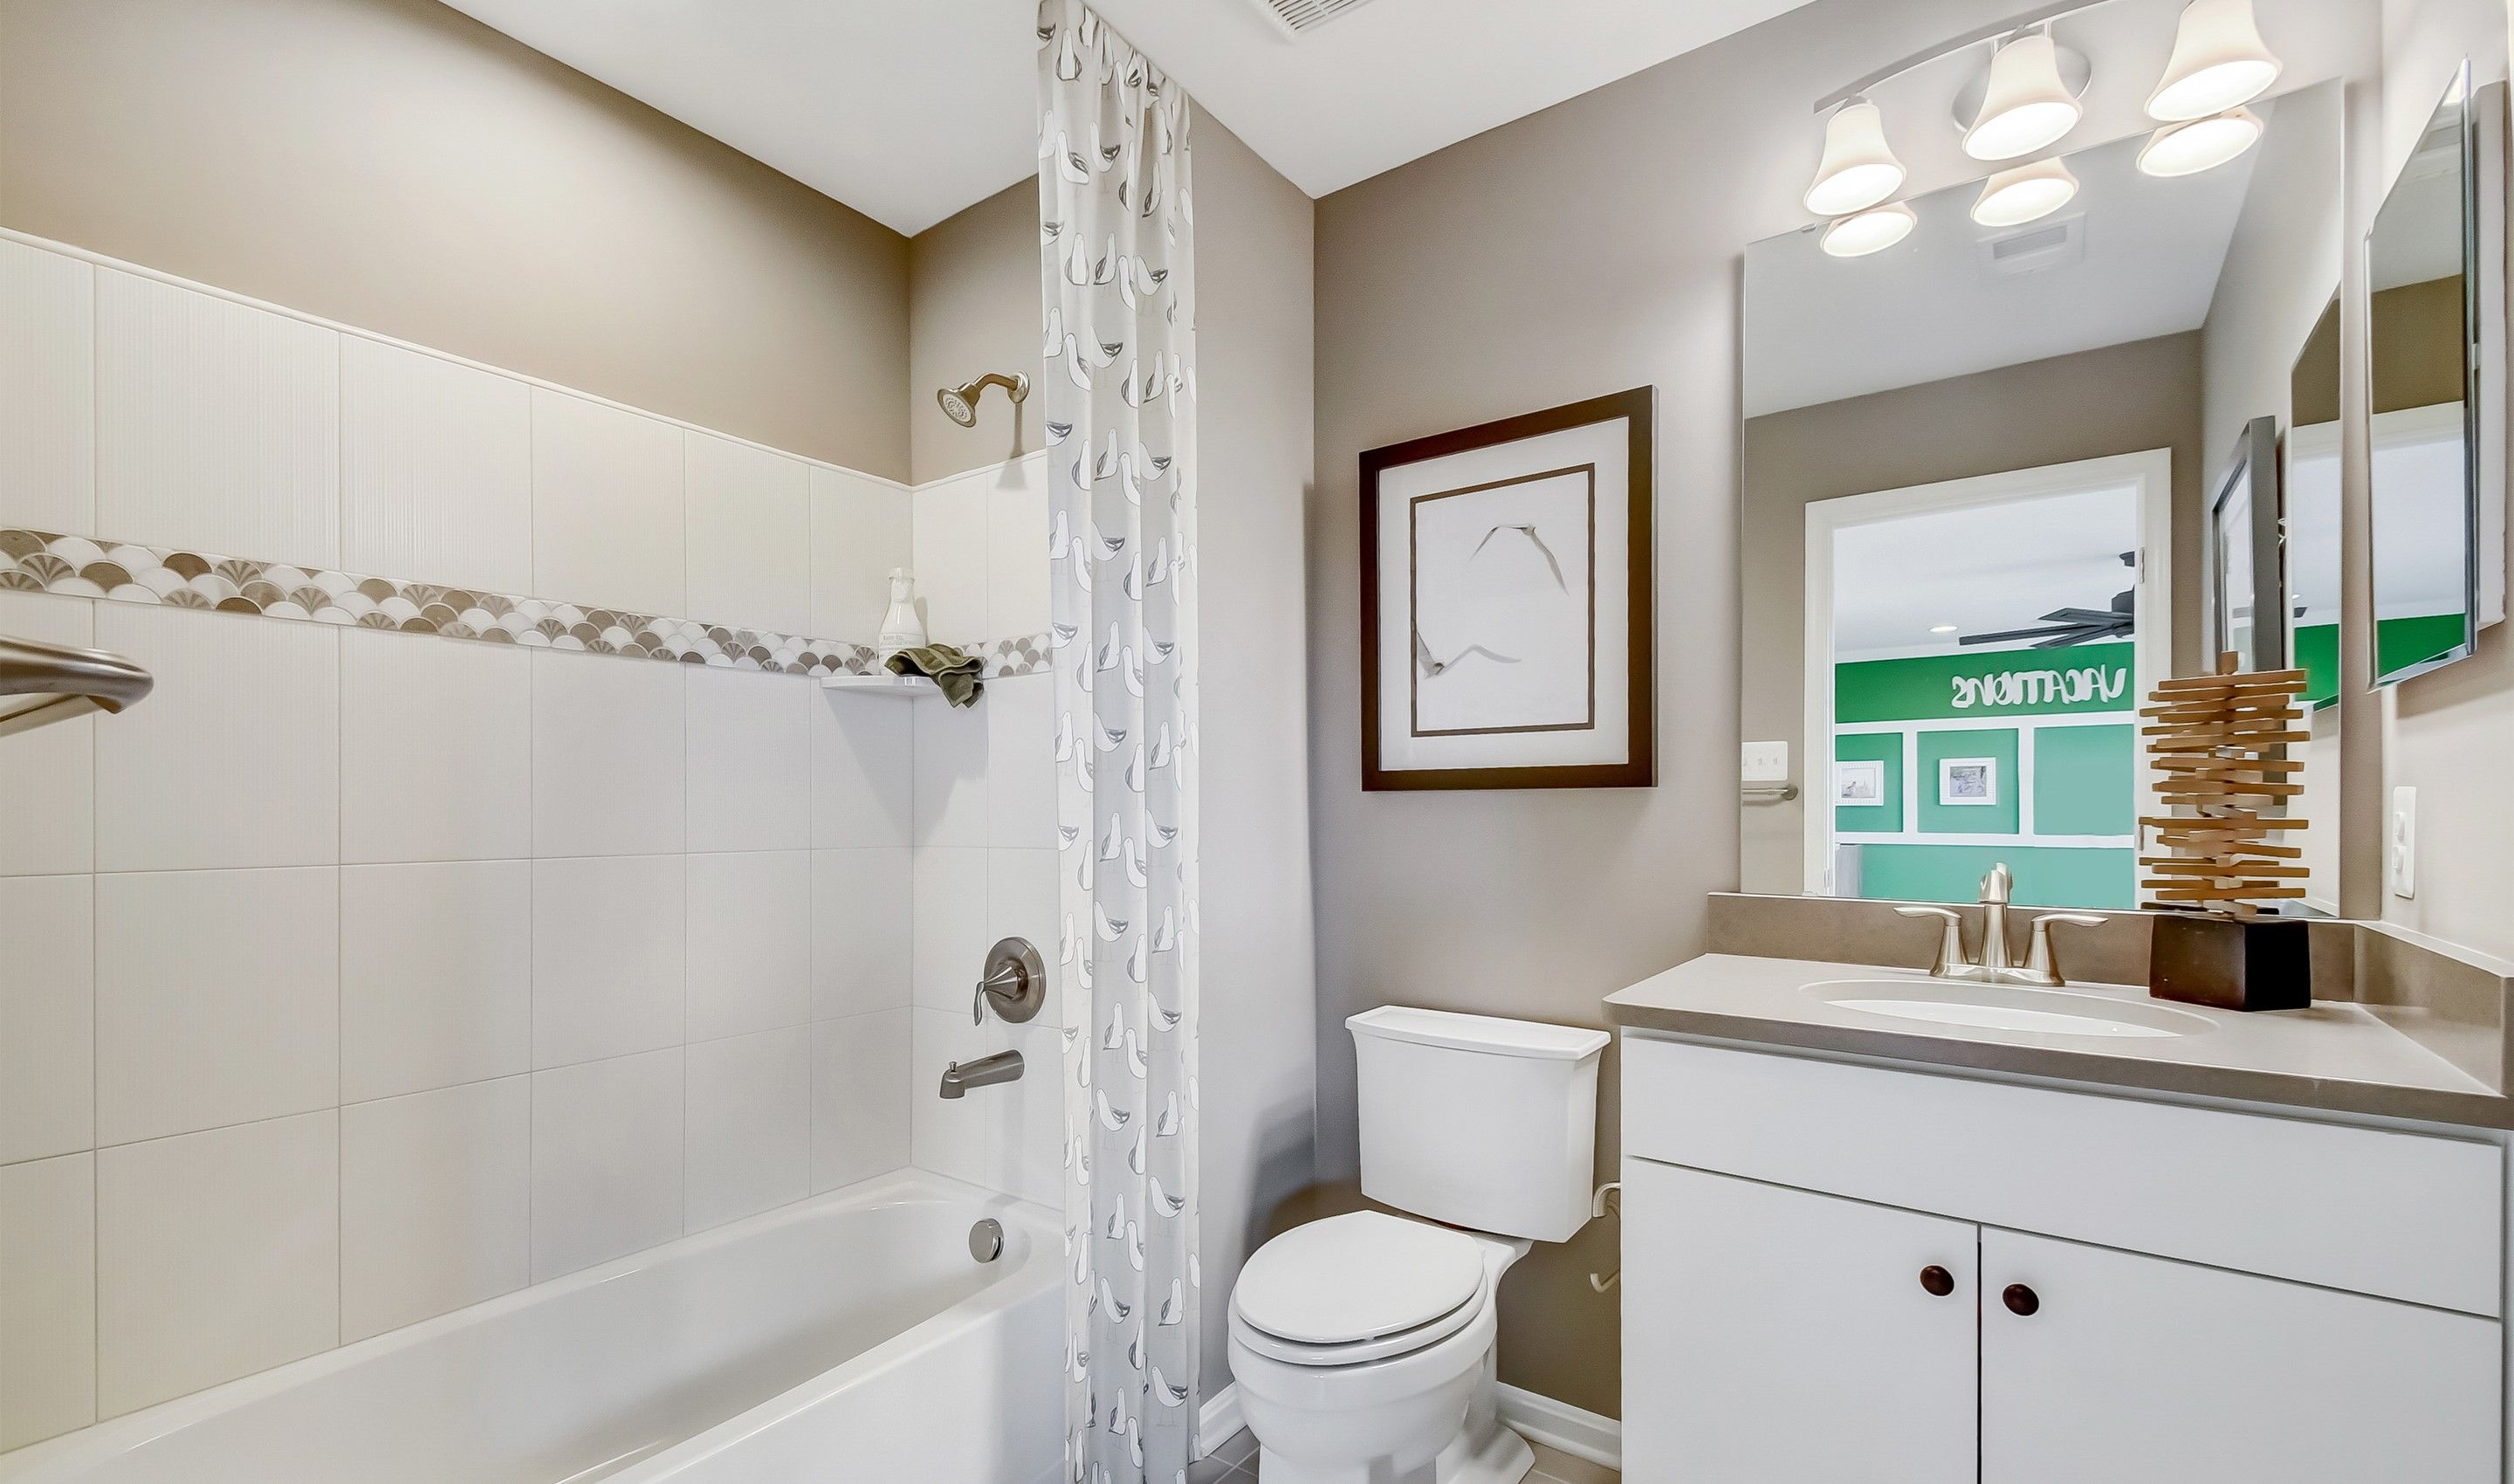 Bathroom featured in the Seacrest III By K. Hovnanian® Homes in Sussex, DE